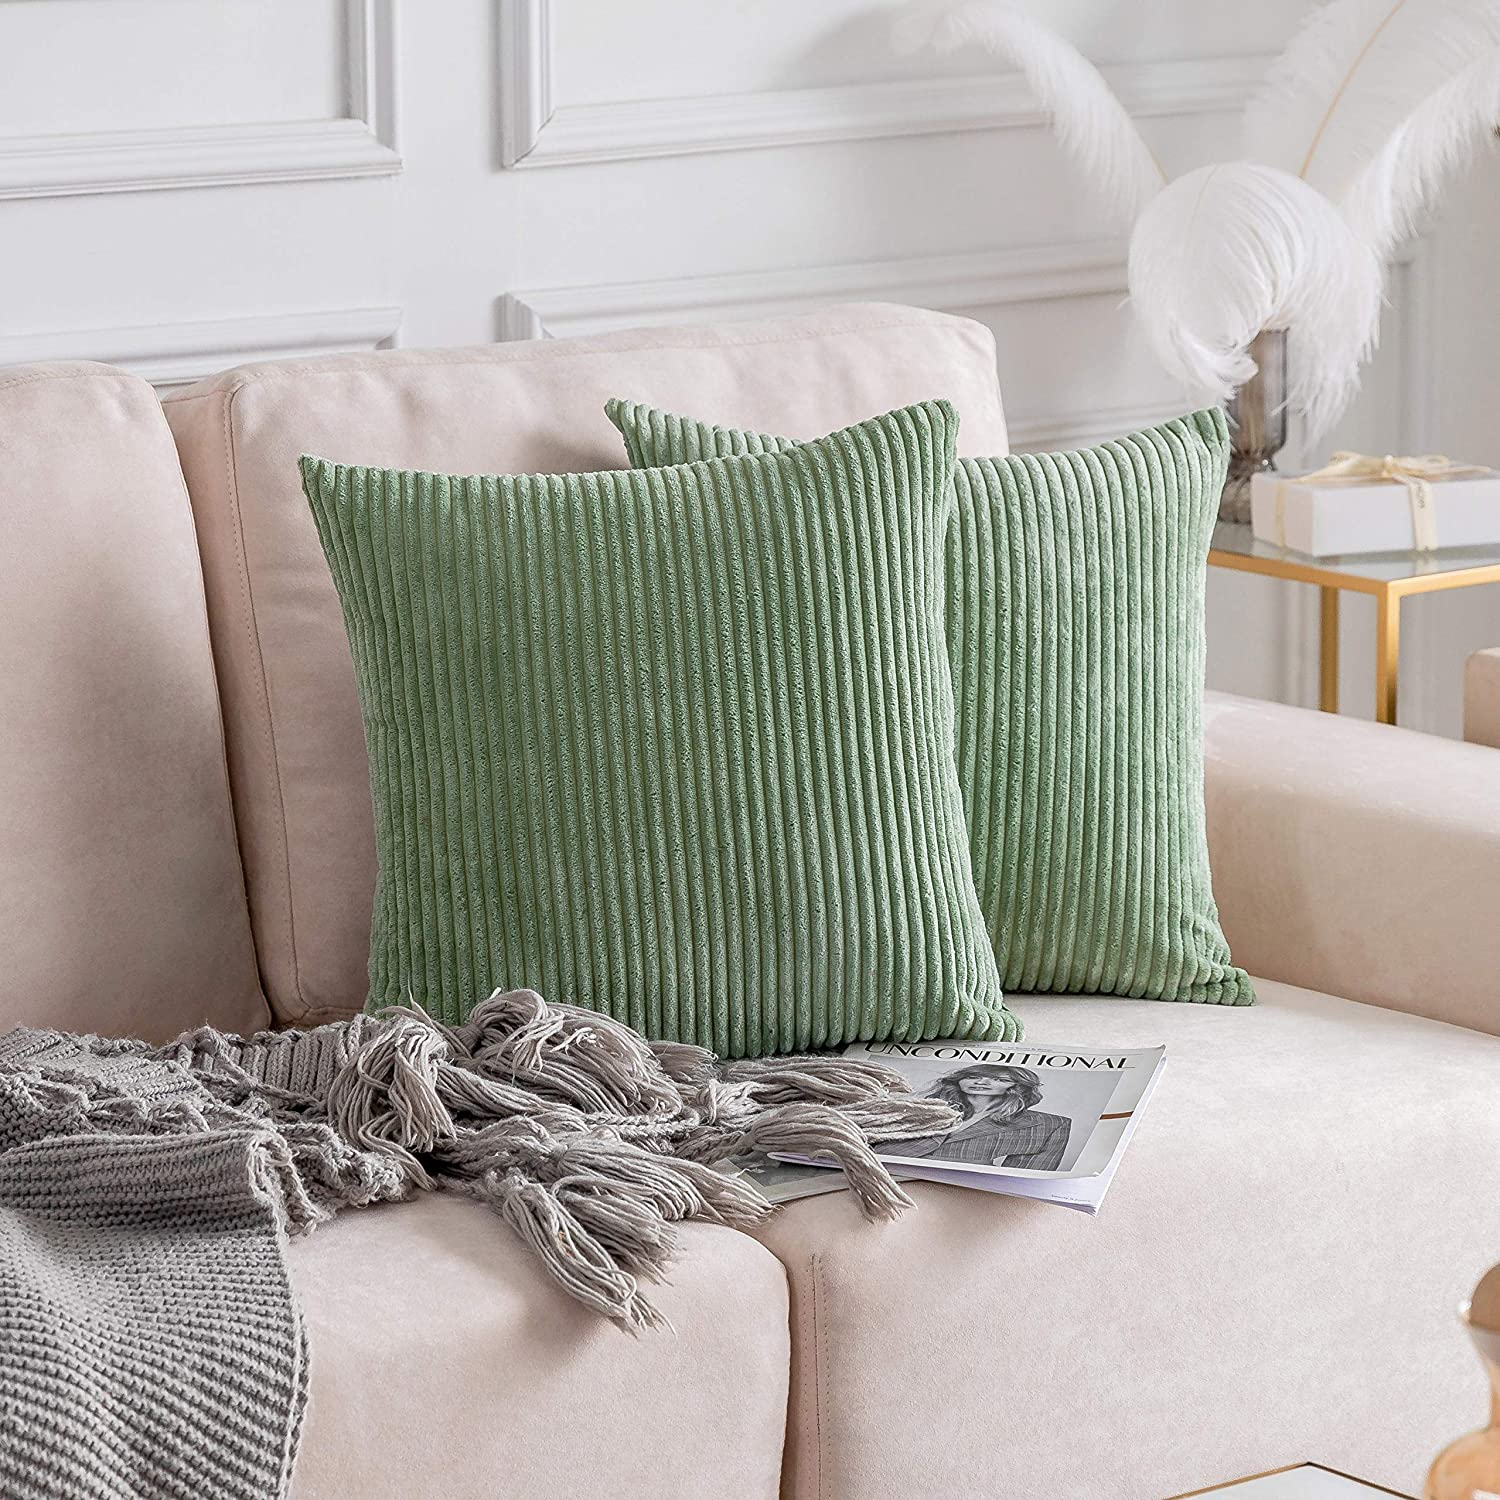 Home Brilliant Decor Solid Plush Corduroy Striped Square Throw Pillow Covers Cushion Covers Decorative for Living Room, Set of 2, 18x18 inches (45cm), Sage Green.